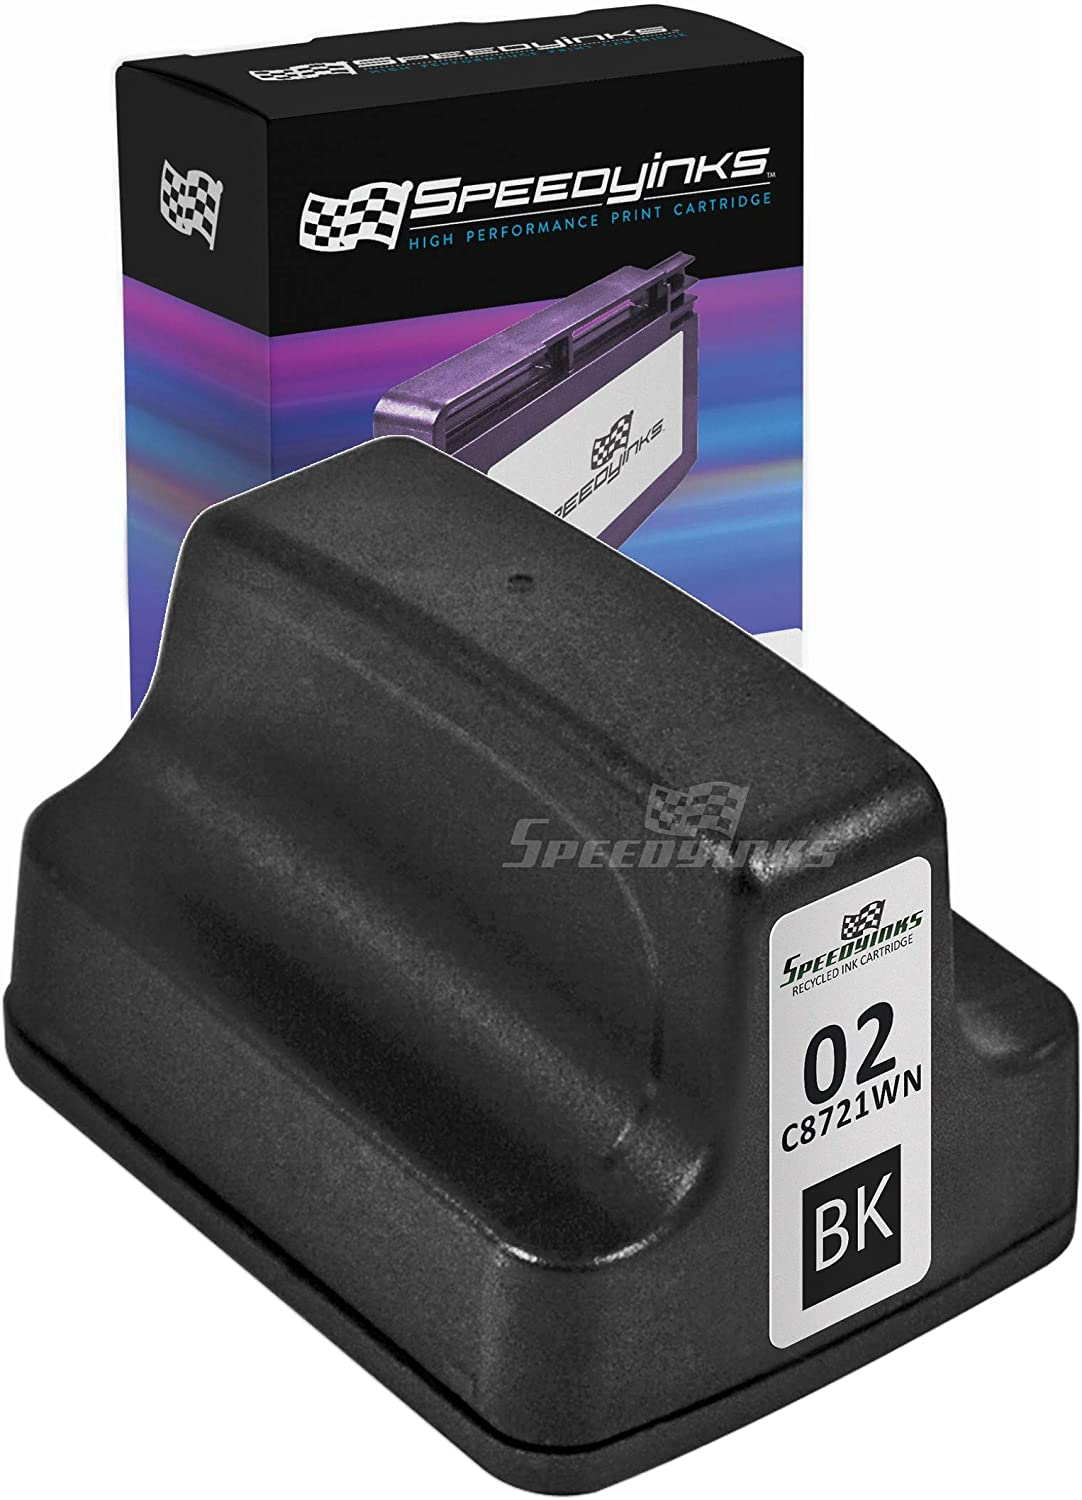 Speedy Inks Remanufactured Ink Cartridge Replacement for HP 02 (Black)